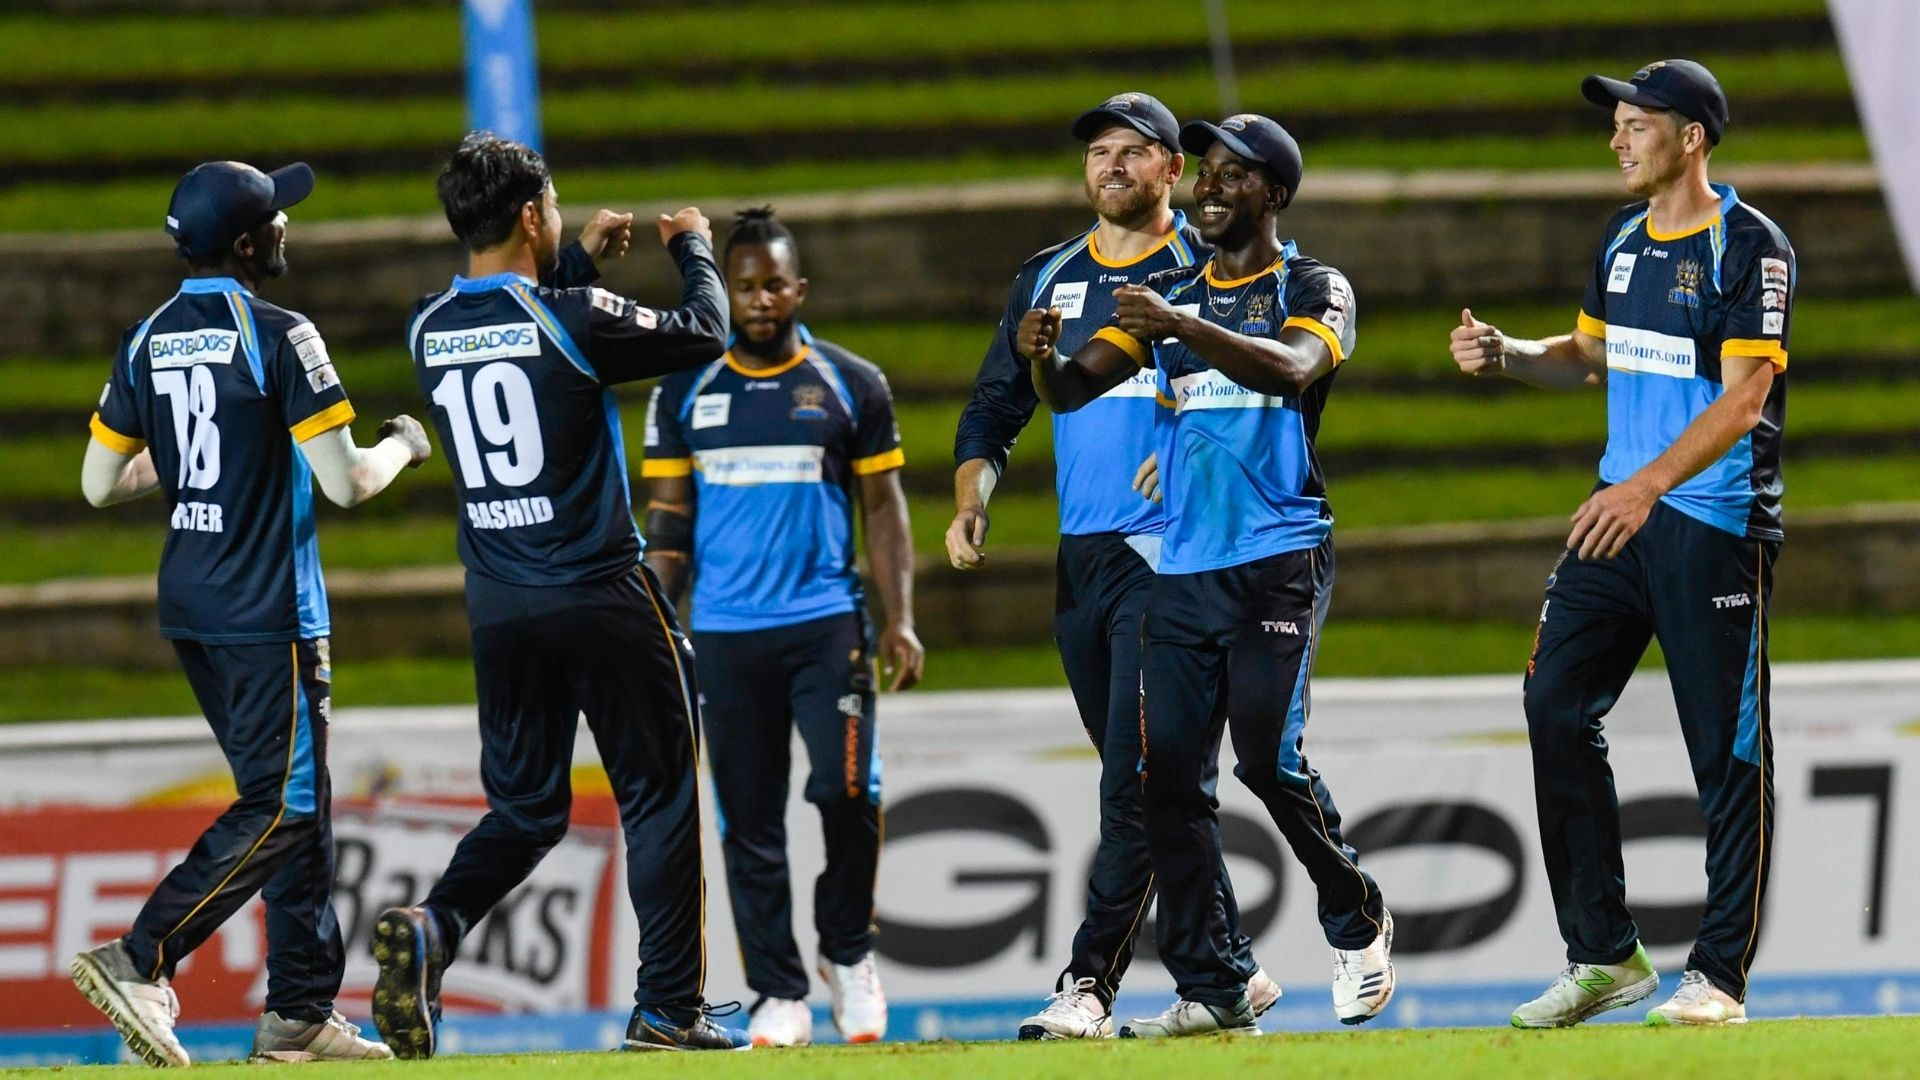 Hayden Walsh Jr. (2R), Corey Anderson (3R) and Mitchell Santner (R) of Barbados Tridents celebrate the dismissal of Denesh Ramdin of St Kitts & Nevis Patriots during the Hero Caribbean Premier League match 2 between Barbados Tridents and St Kitts & Nevis Patriots at Brian Lara Cricket Academy on August 18, 2020 in Tarouba, Trinidad And Tobago. (Photo by Randy Brooks - CPL T20/CPL T20 via Getty Images)